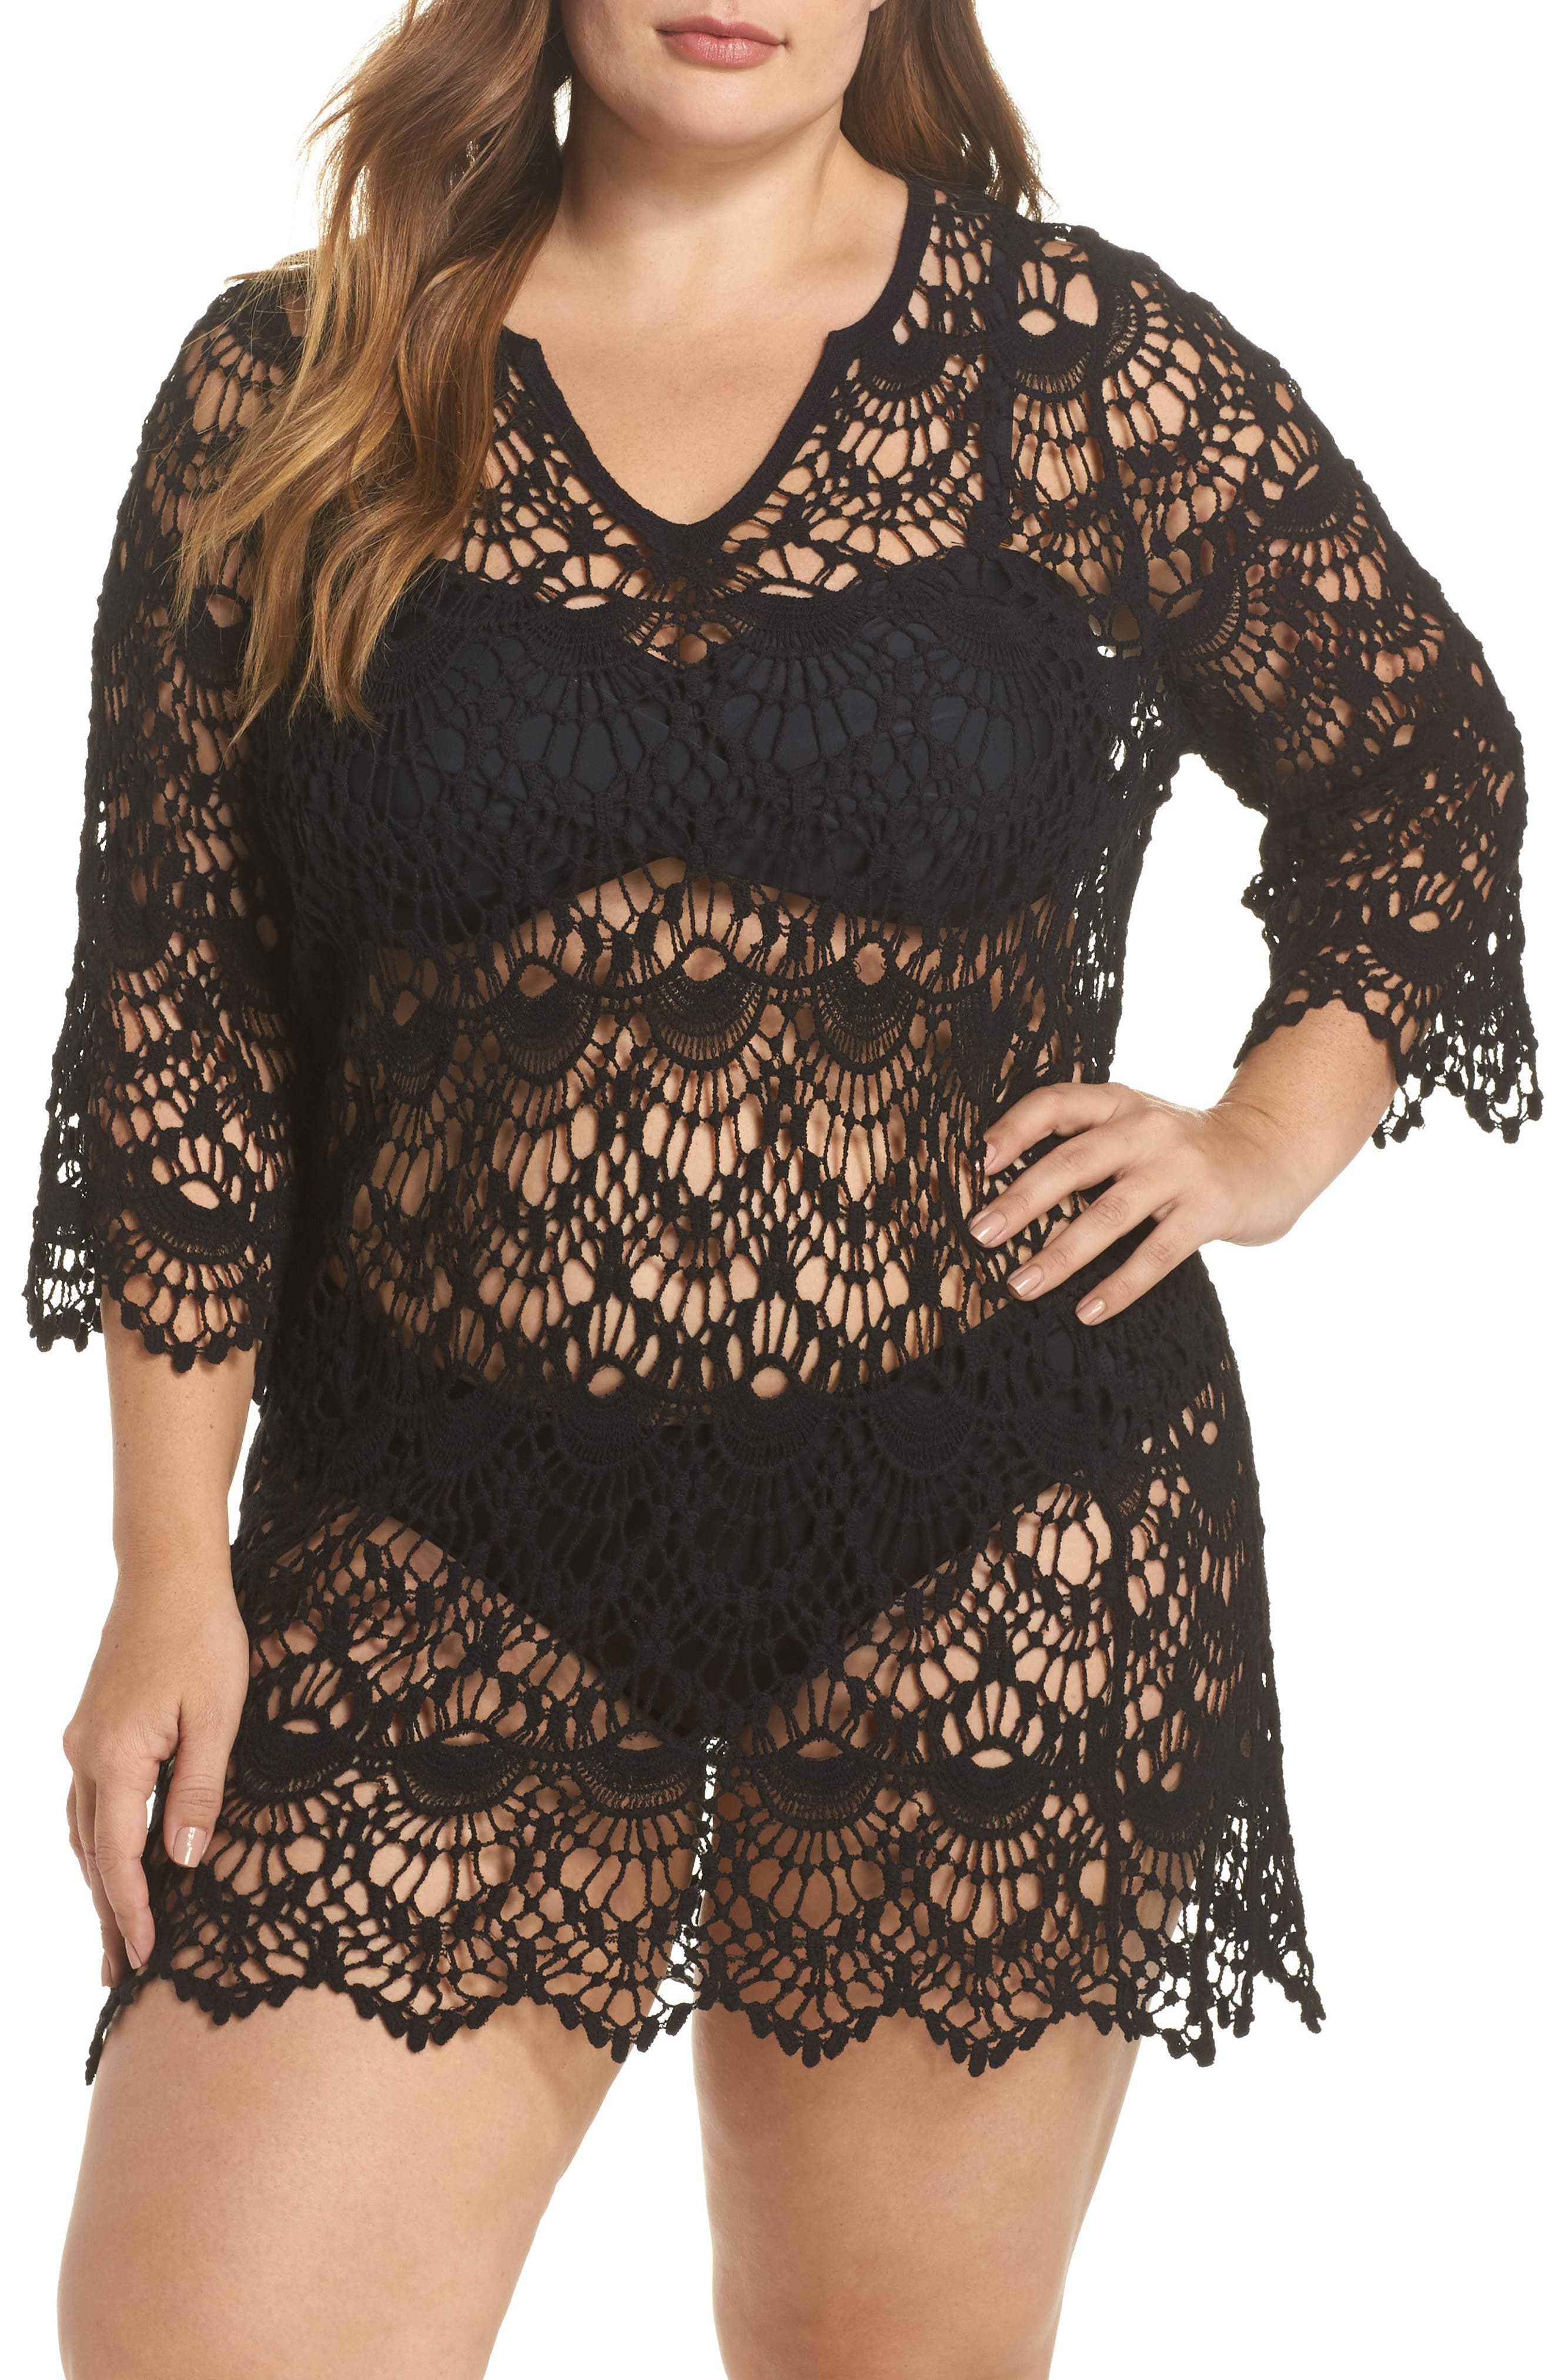 Main Image - Surf Gypsy Crochet Cover-Up Tunic (Plus Size)